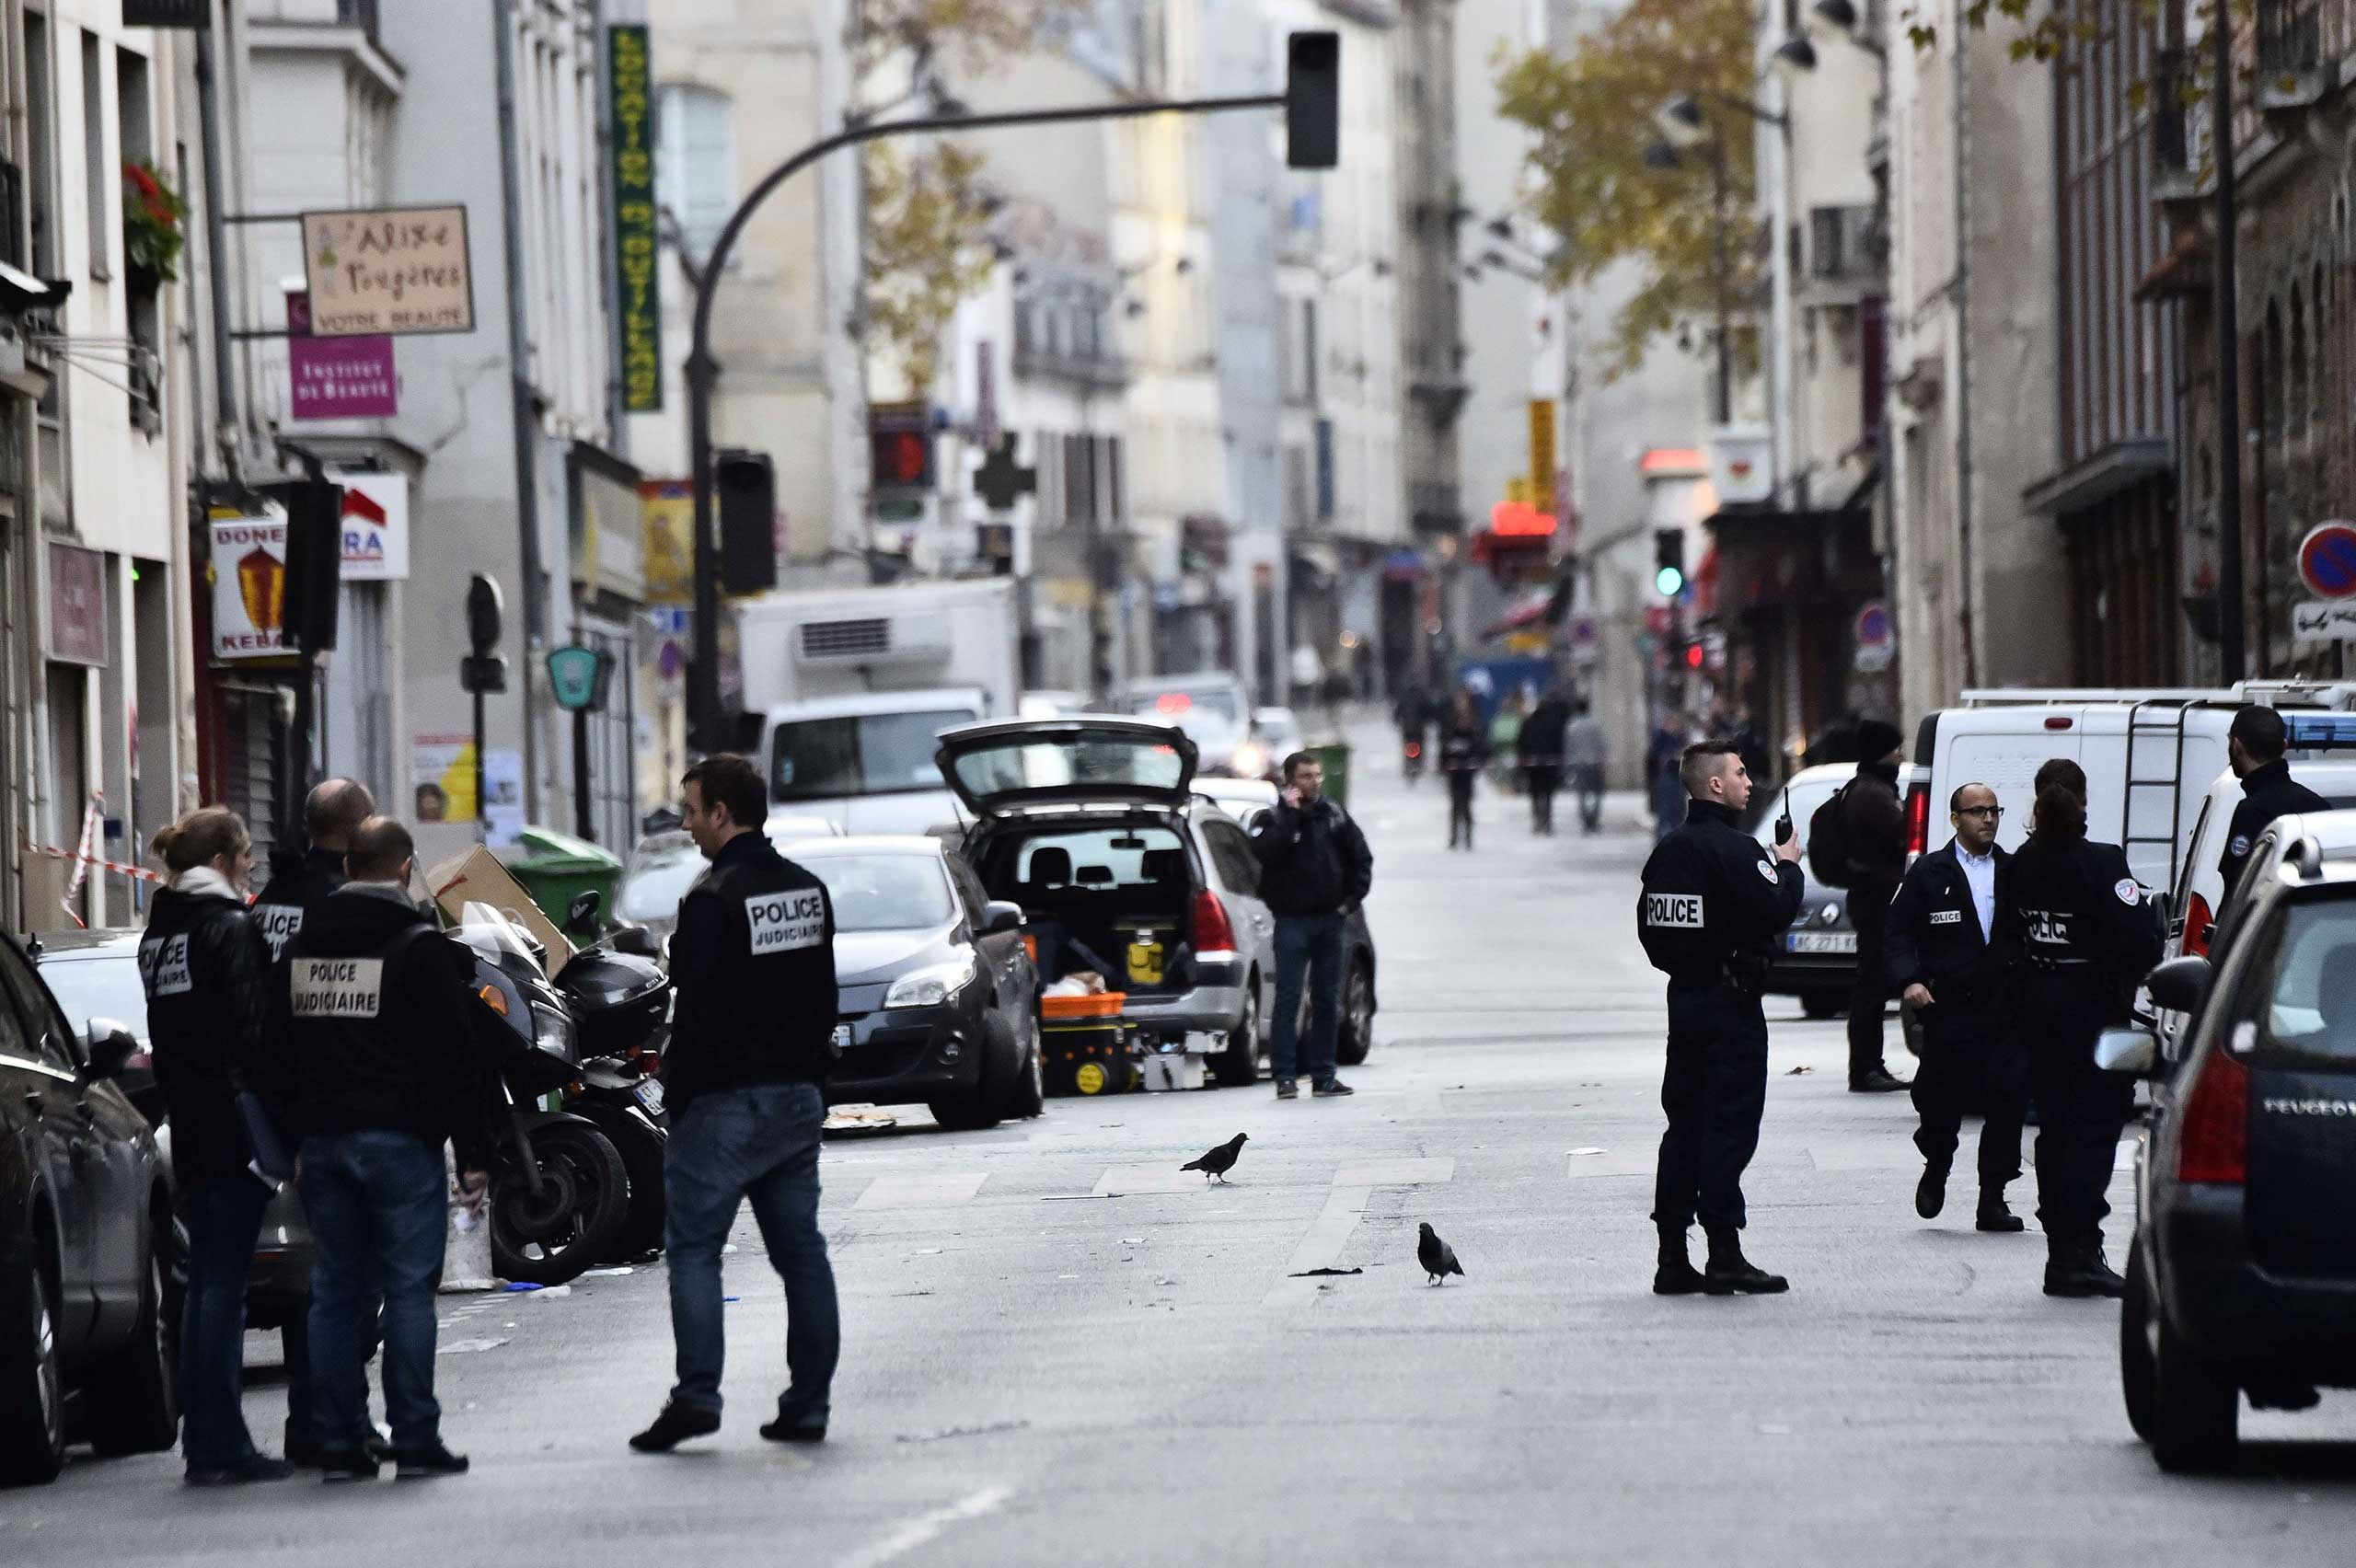 Police are seen near the Cafe La Belle Equipe at the Rue de Charonne in Paris, on Nov. 14, 2015.